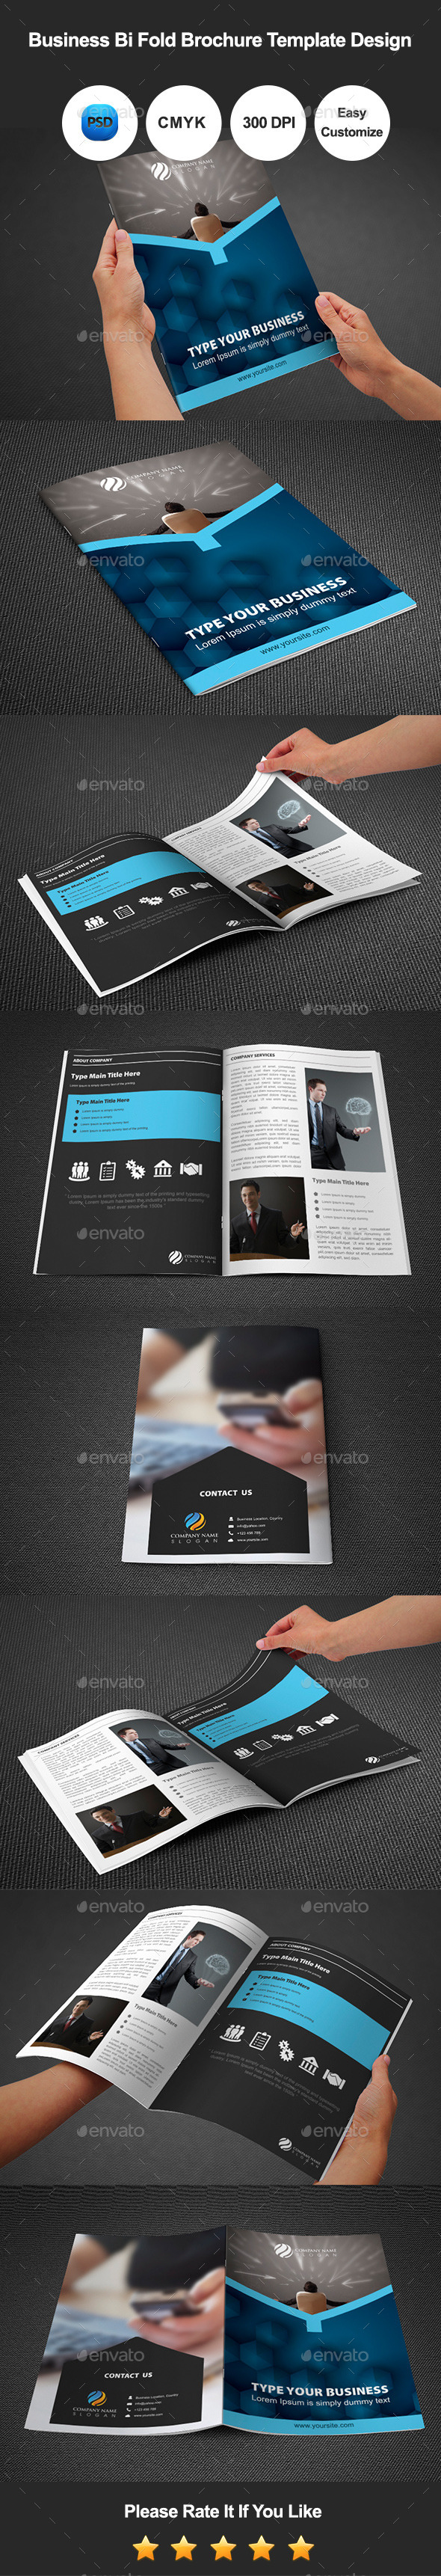 GraphicRiver Business Bi Fold Brochure Template Design 10892459